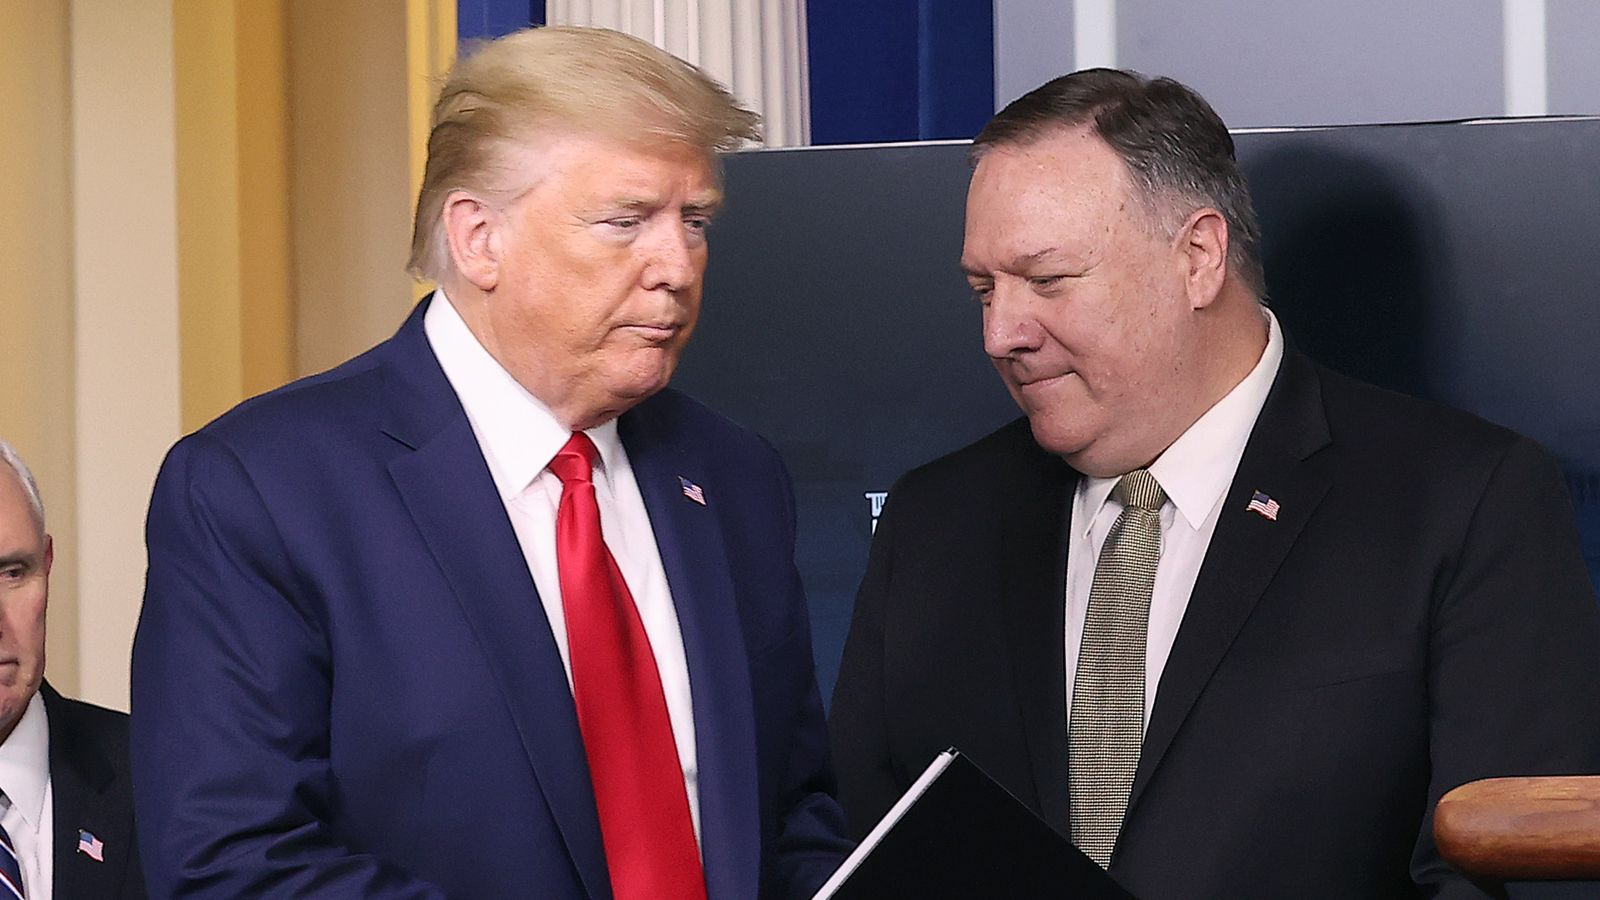 Despite Biden's victory, Pompeo says 'there will be a smooth transition to our second Trump administration'